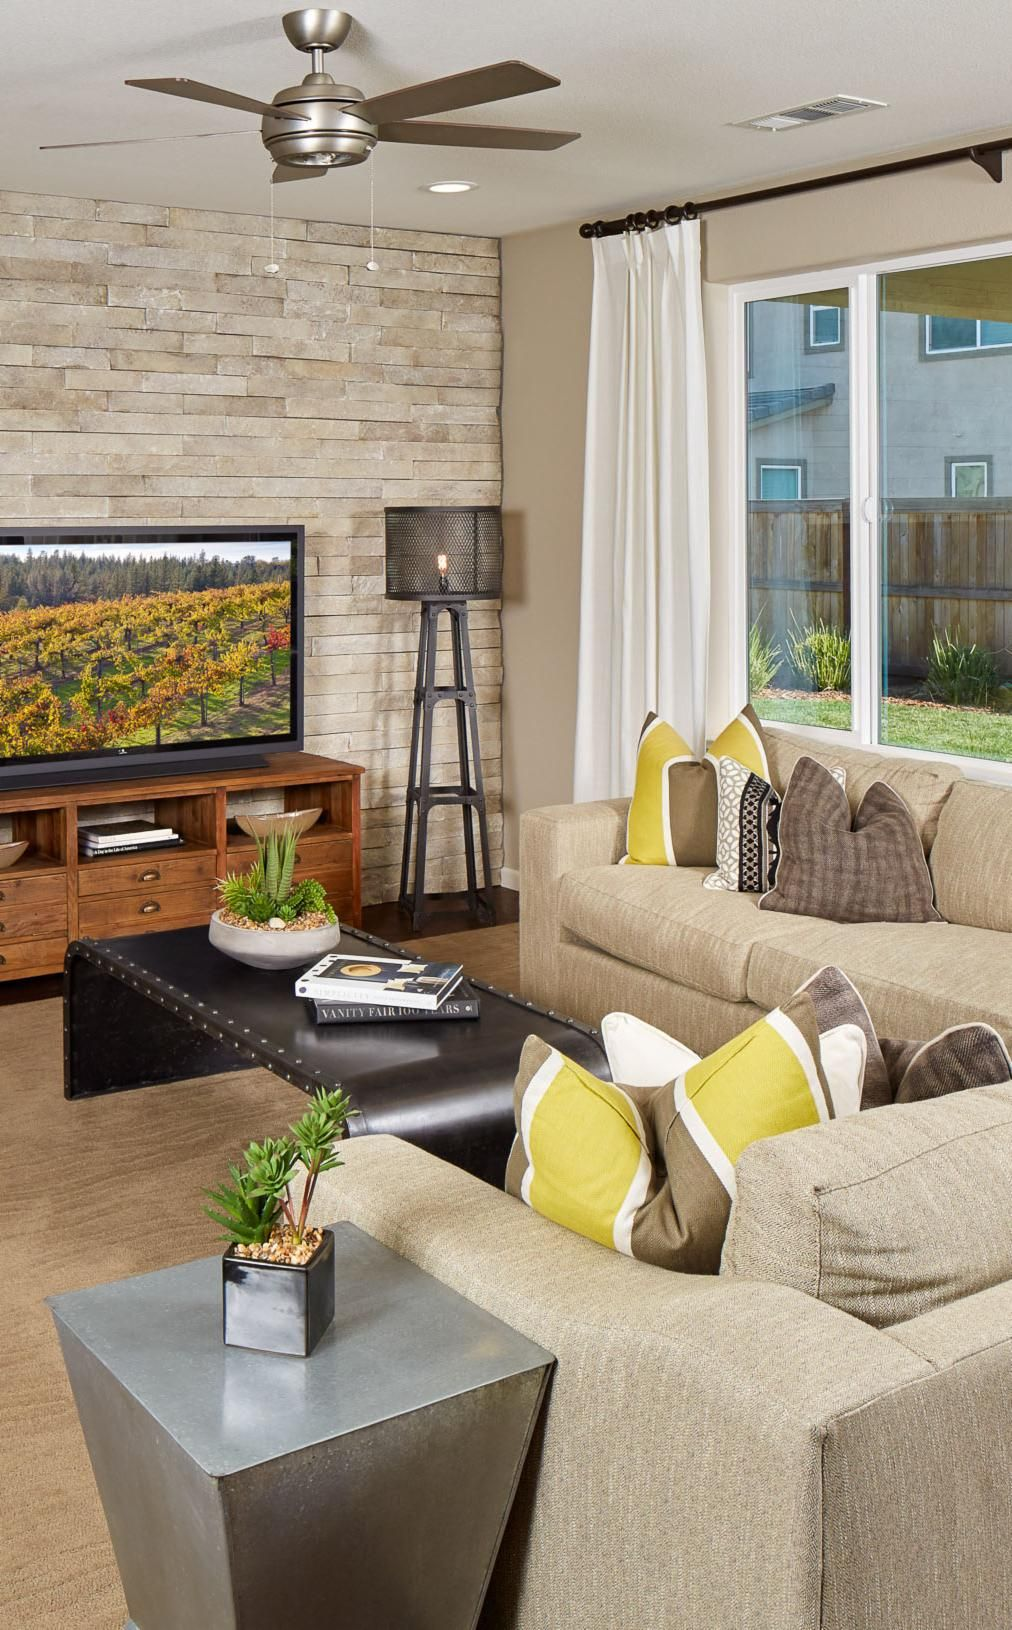 The ideal living room design... | Living room designs ... on Outdoor Living Room Set id=75059